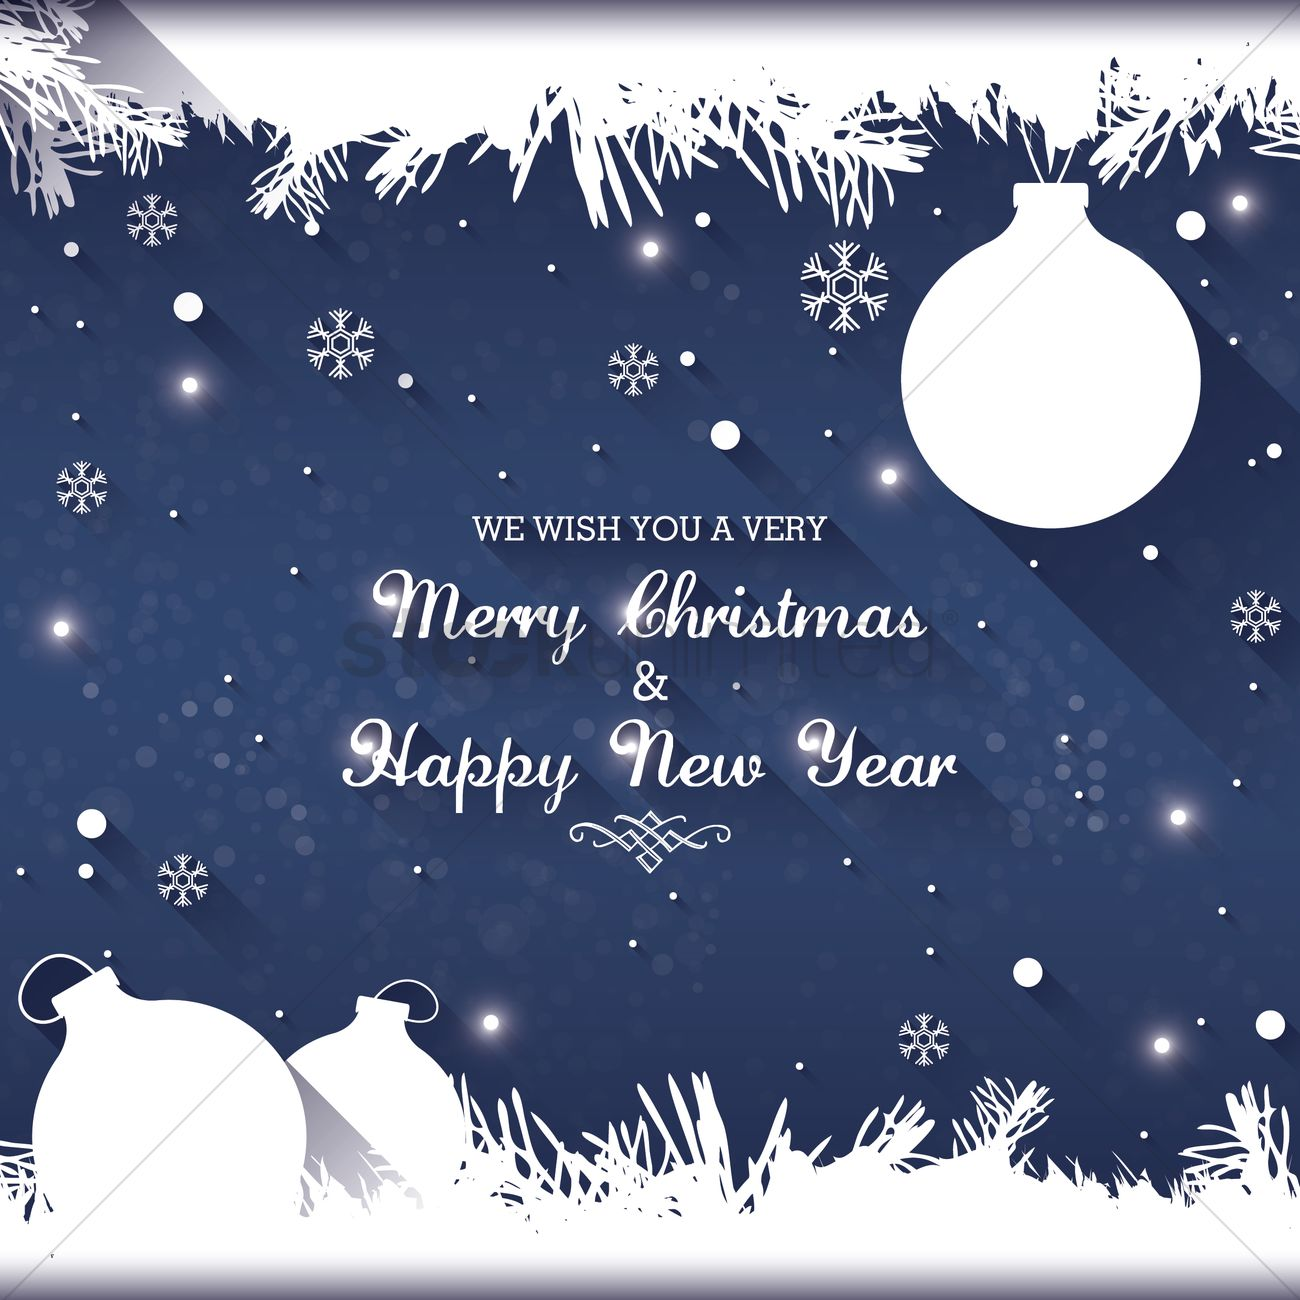 Christmas and new year greetings vector image 1626361 stockunlimited christmas and new year greetings vector graphic kristyandbryce Images